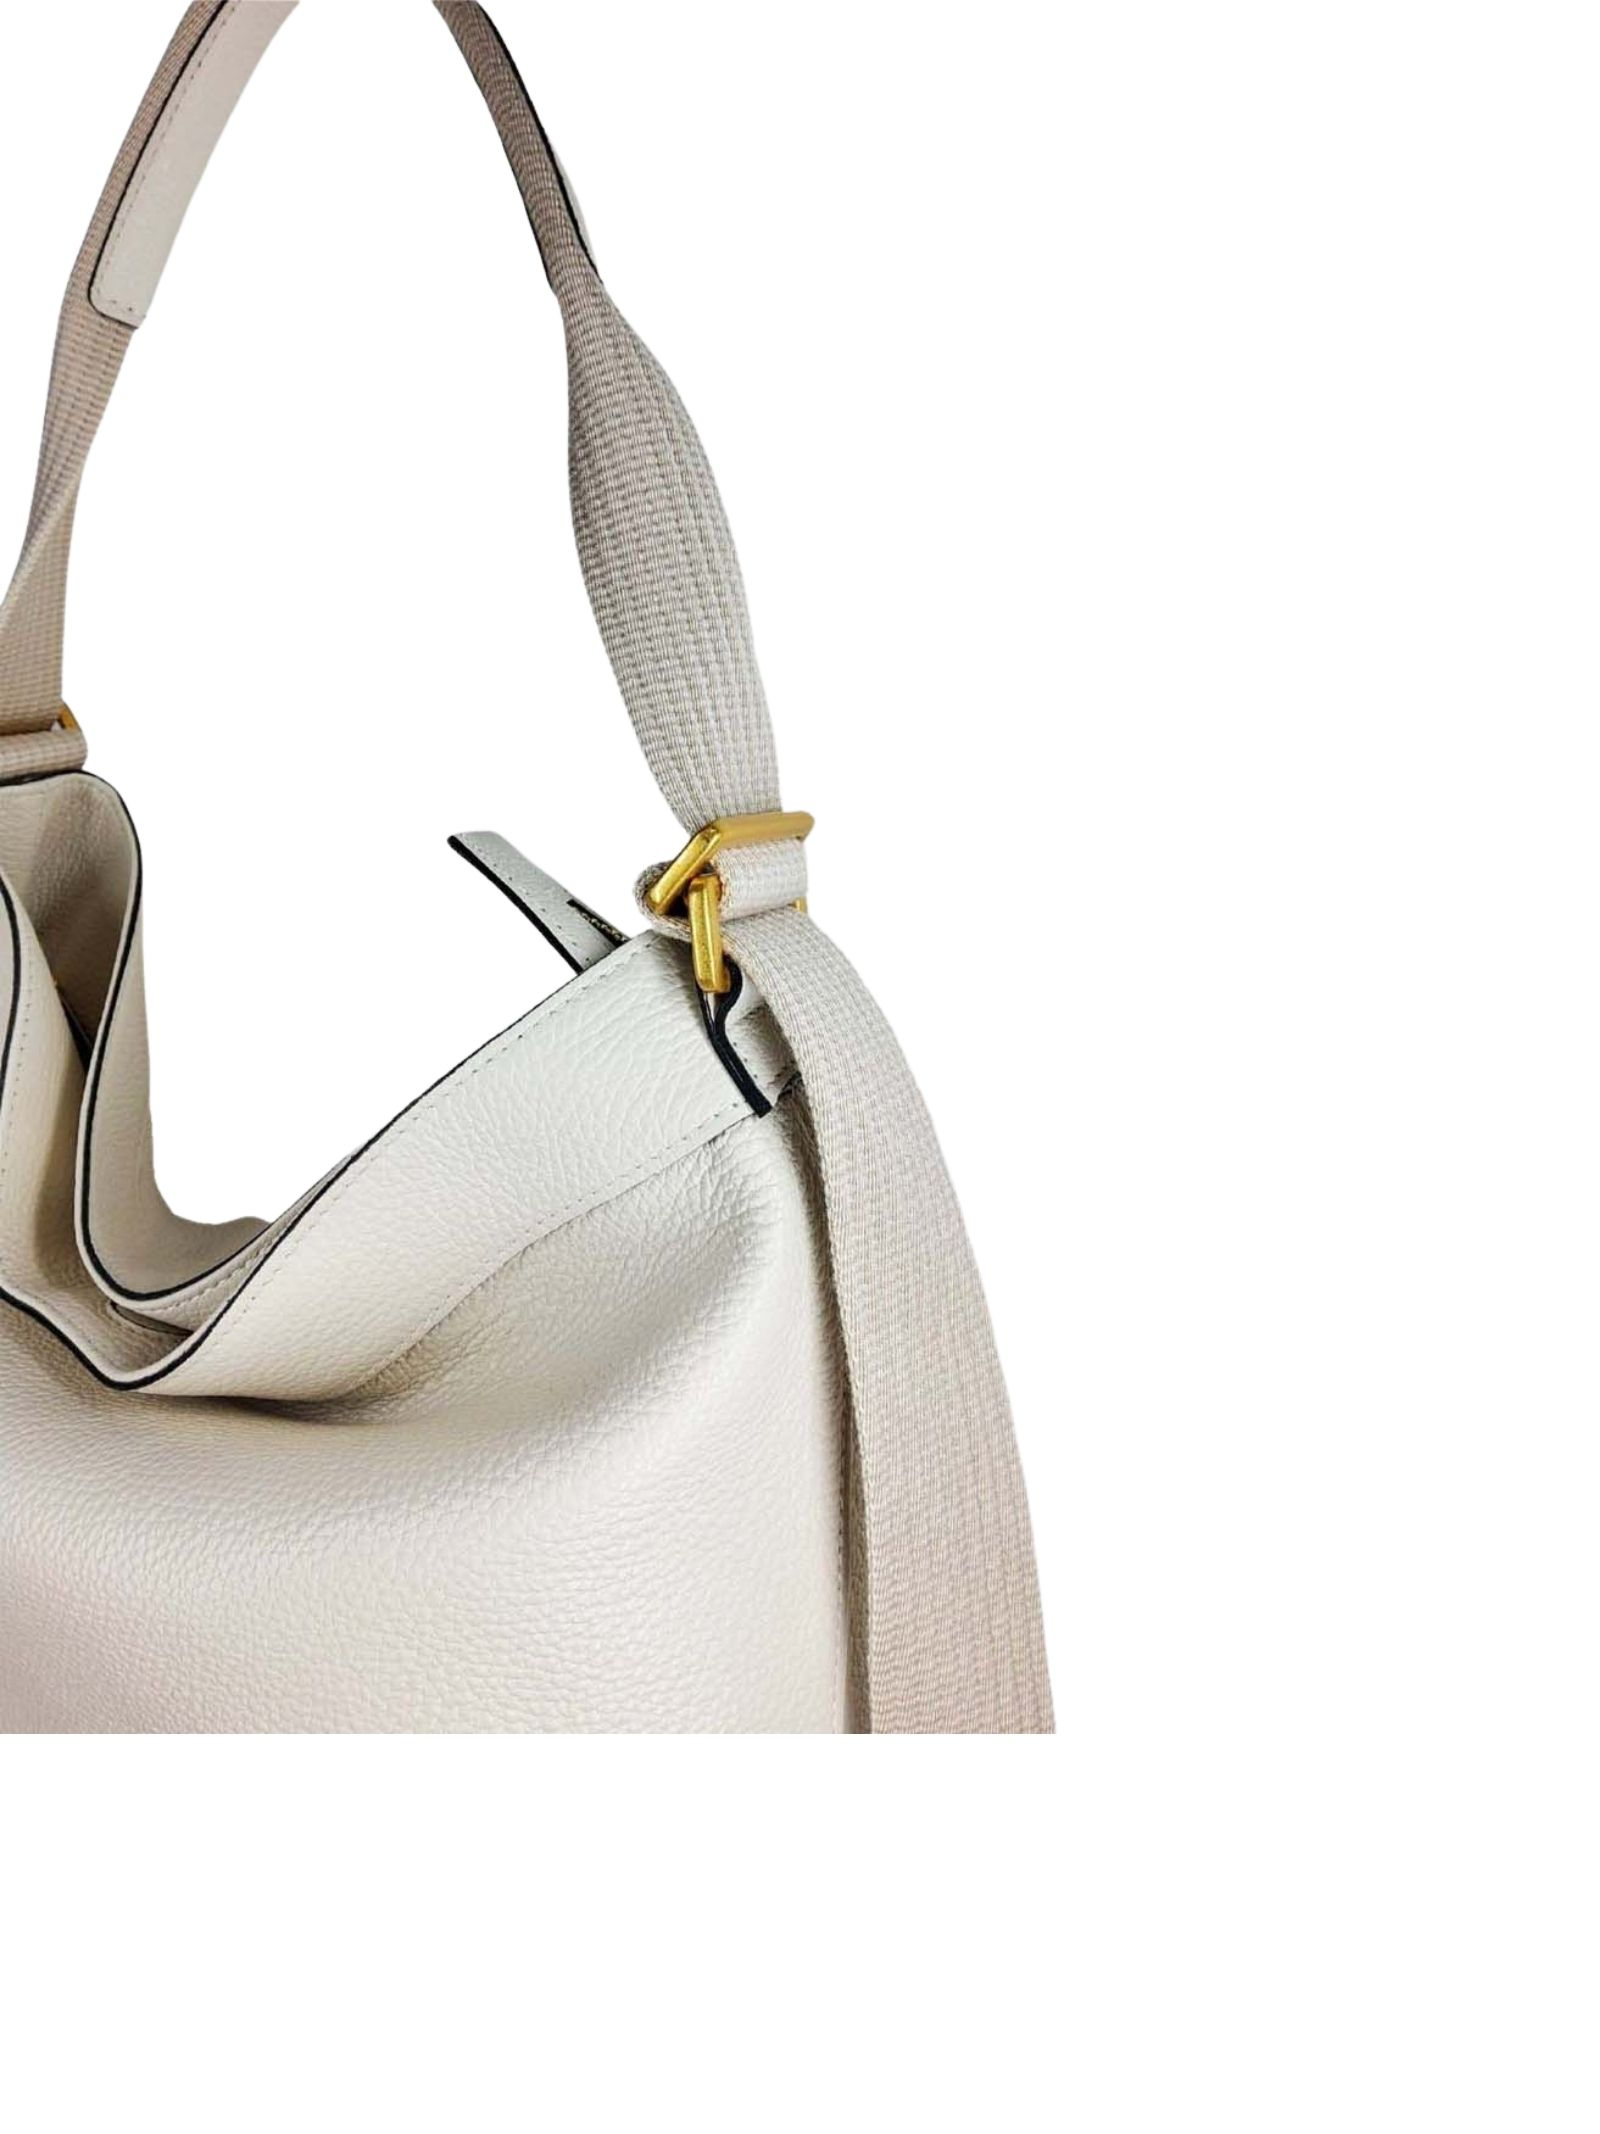 Amaranta Woman Shoulder Bag In Cream Leather With Dyed-On-Color Fabric Handle Gianni Chiarini   Bags and backpacks   BS85213890